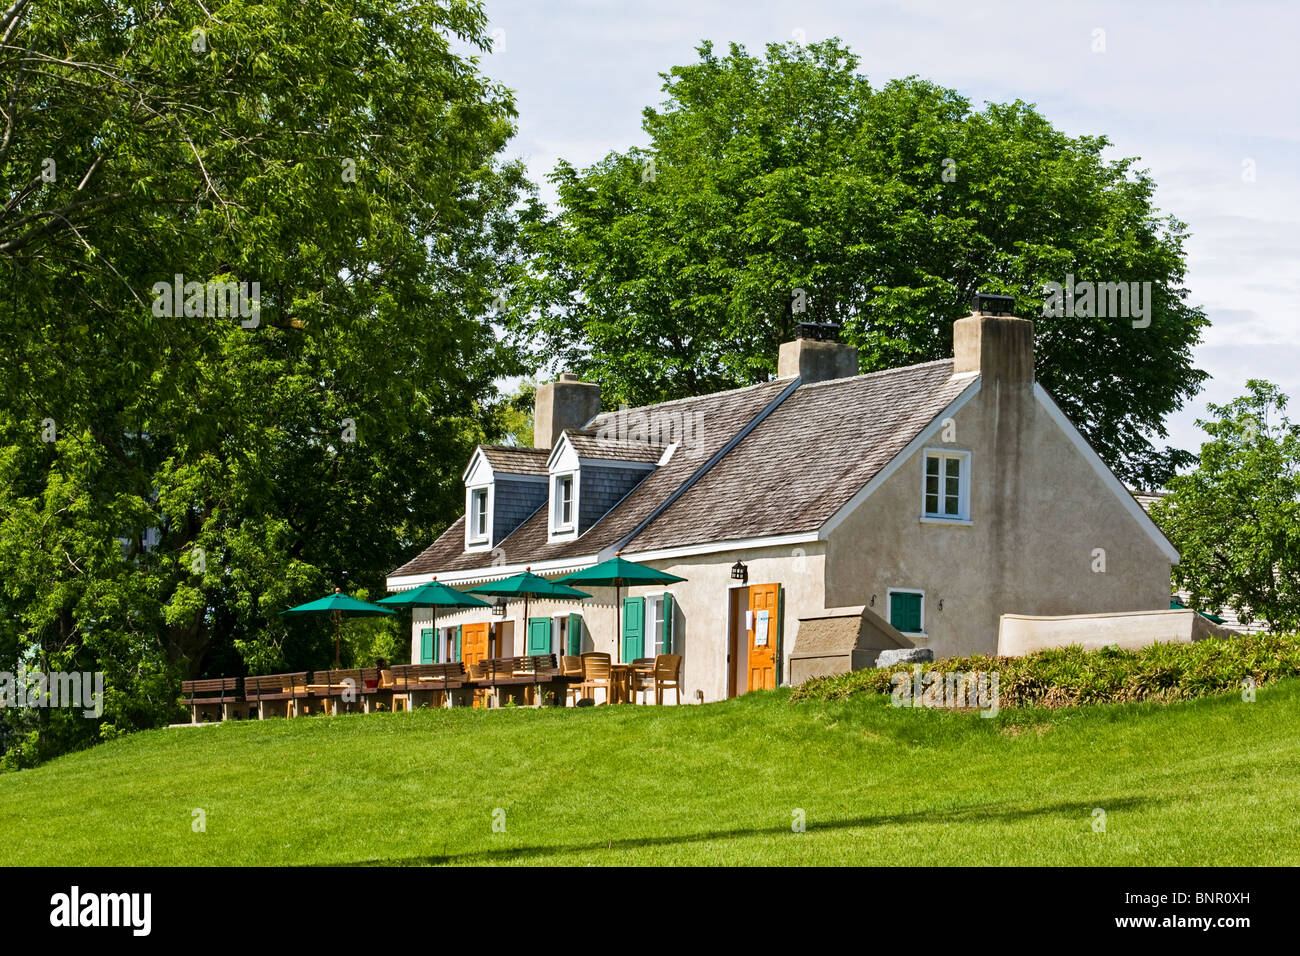 La Maison Des Auteurs In Parc Jacques Cartier Gatineau Quebec Stock Photo Royalty Free Image